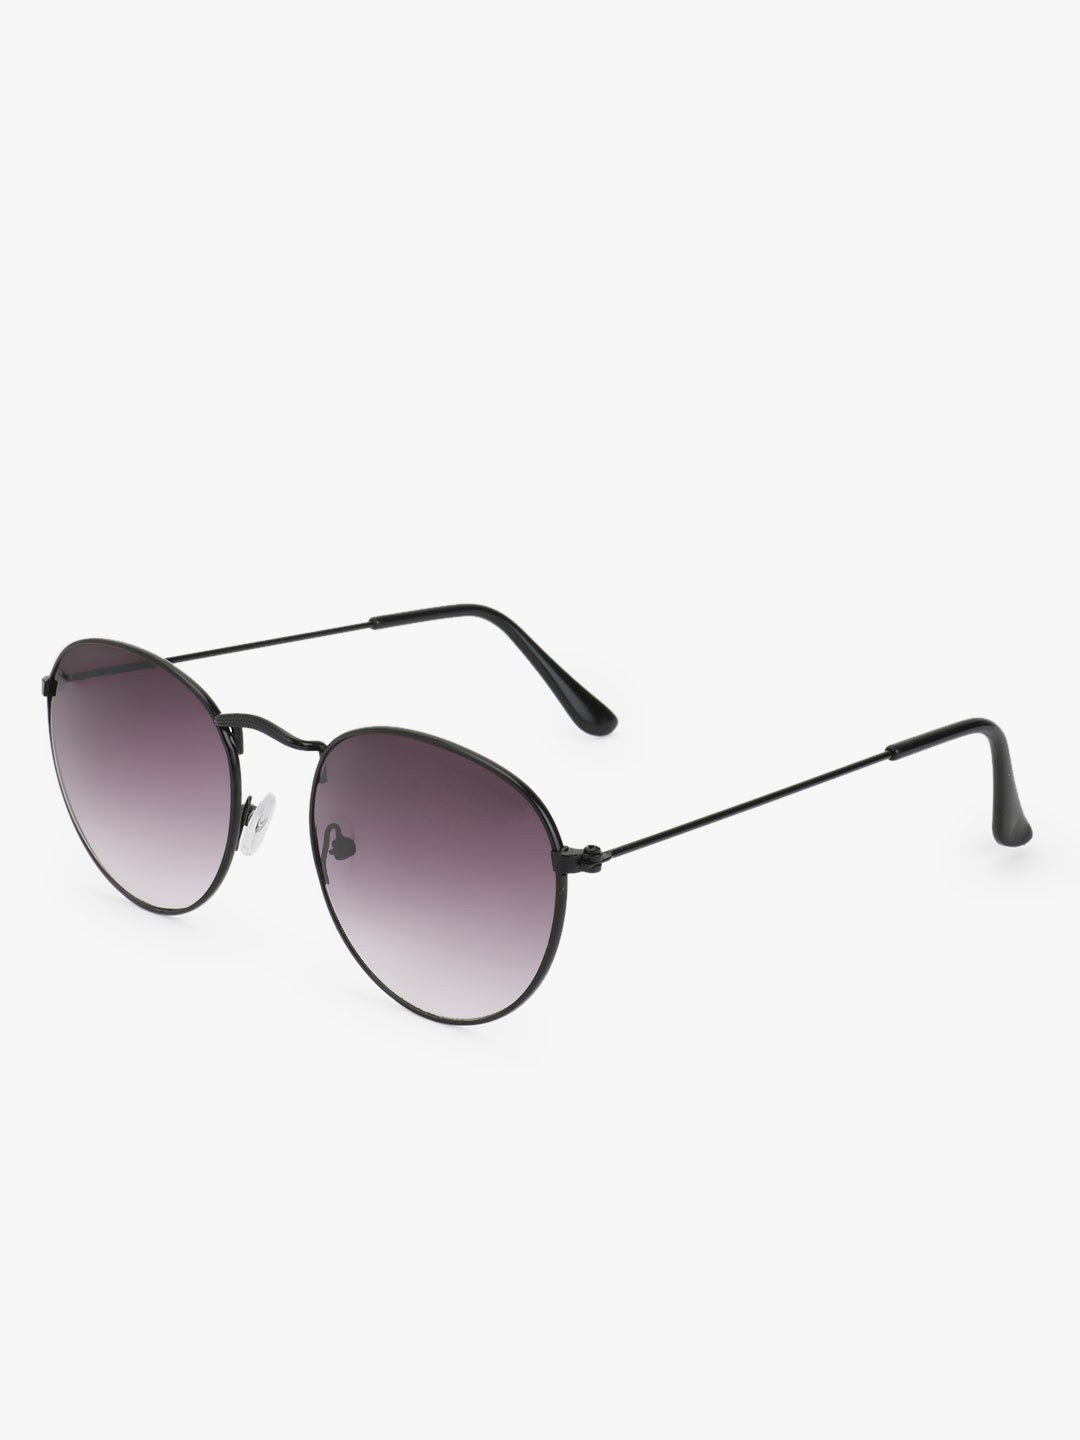 KOOVS Grey Metallic Frame Round Sunglasses 1